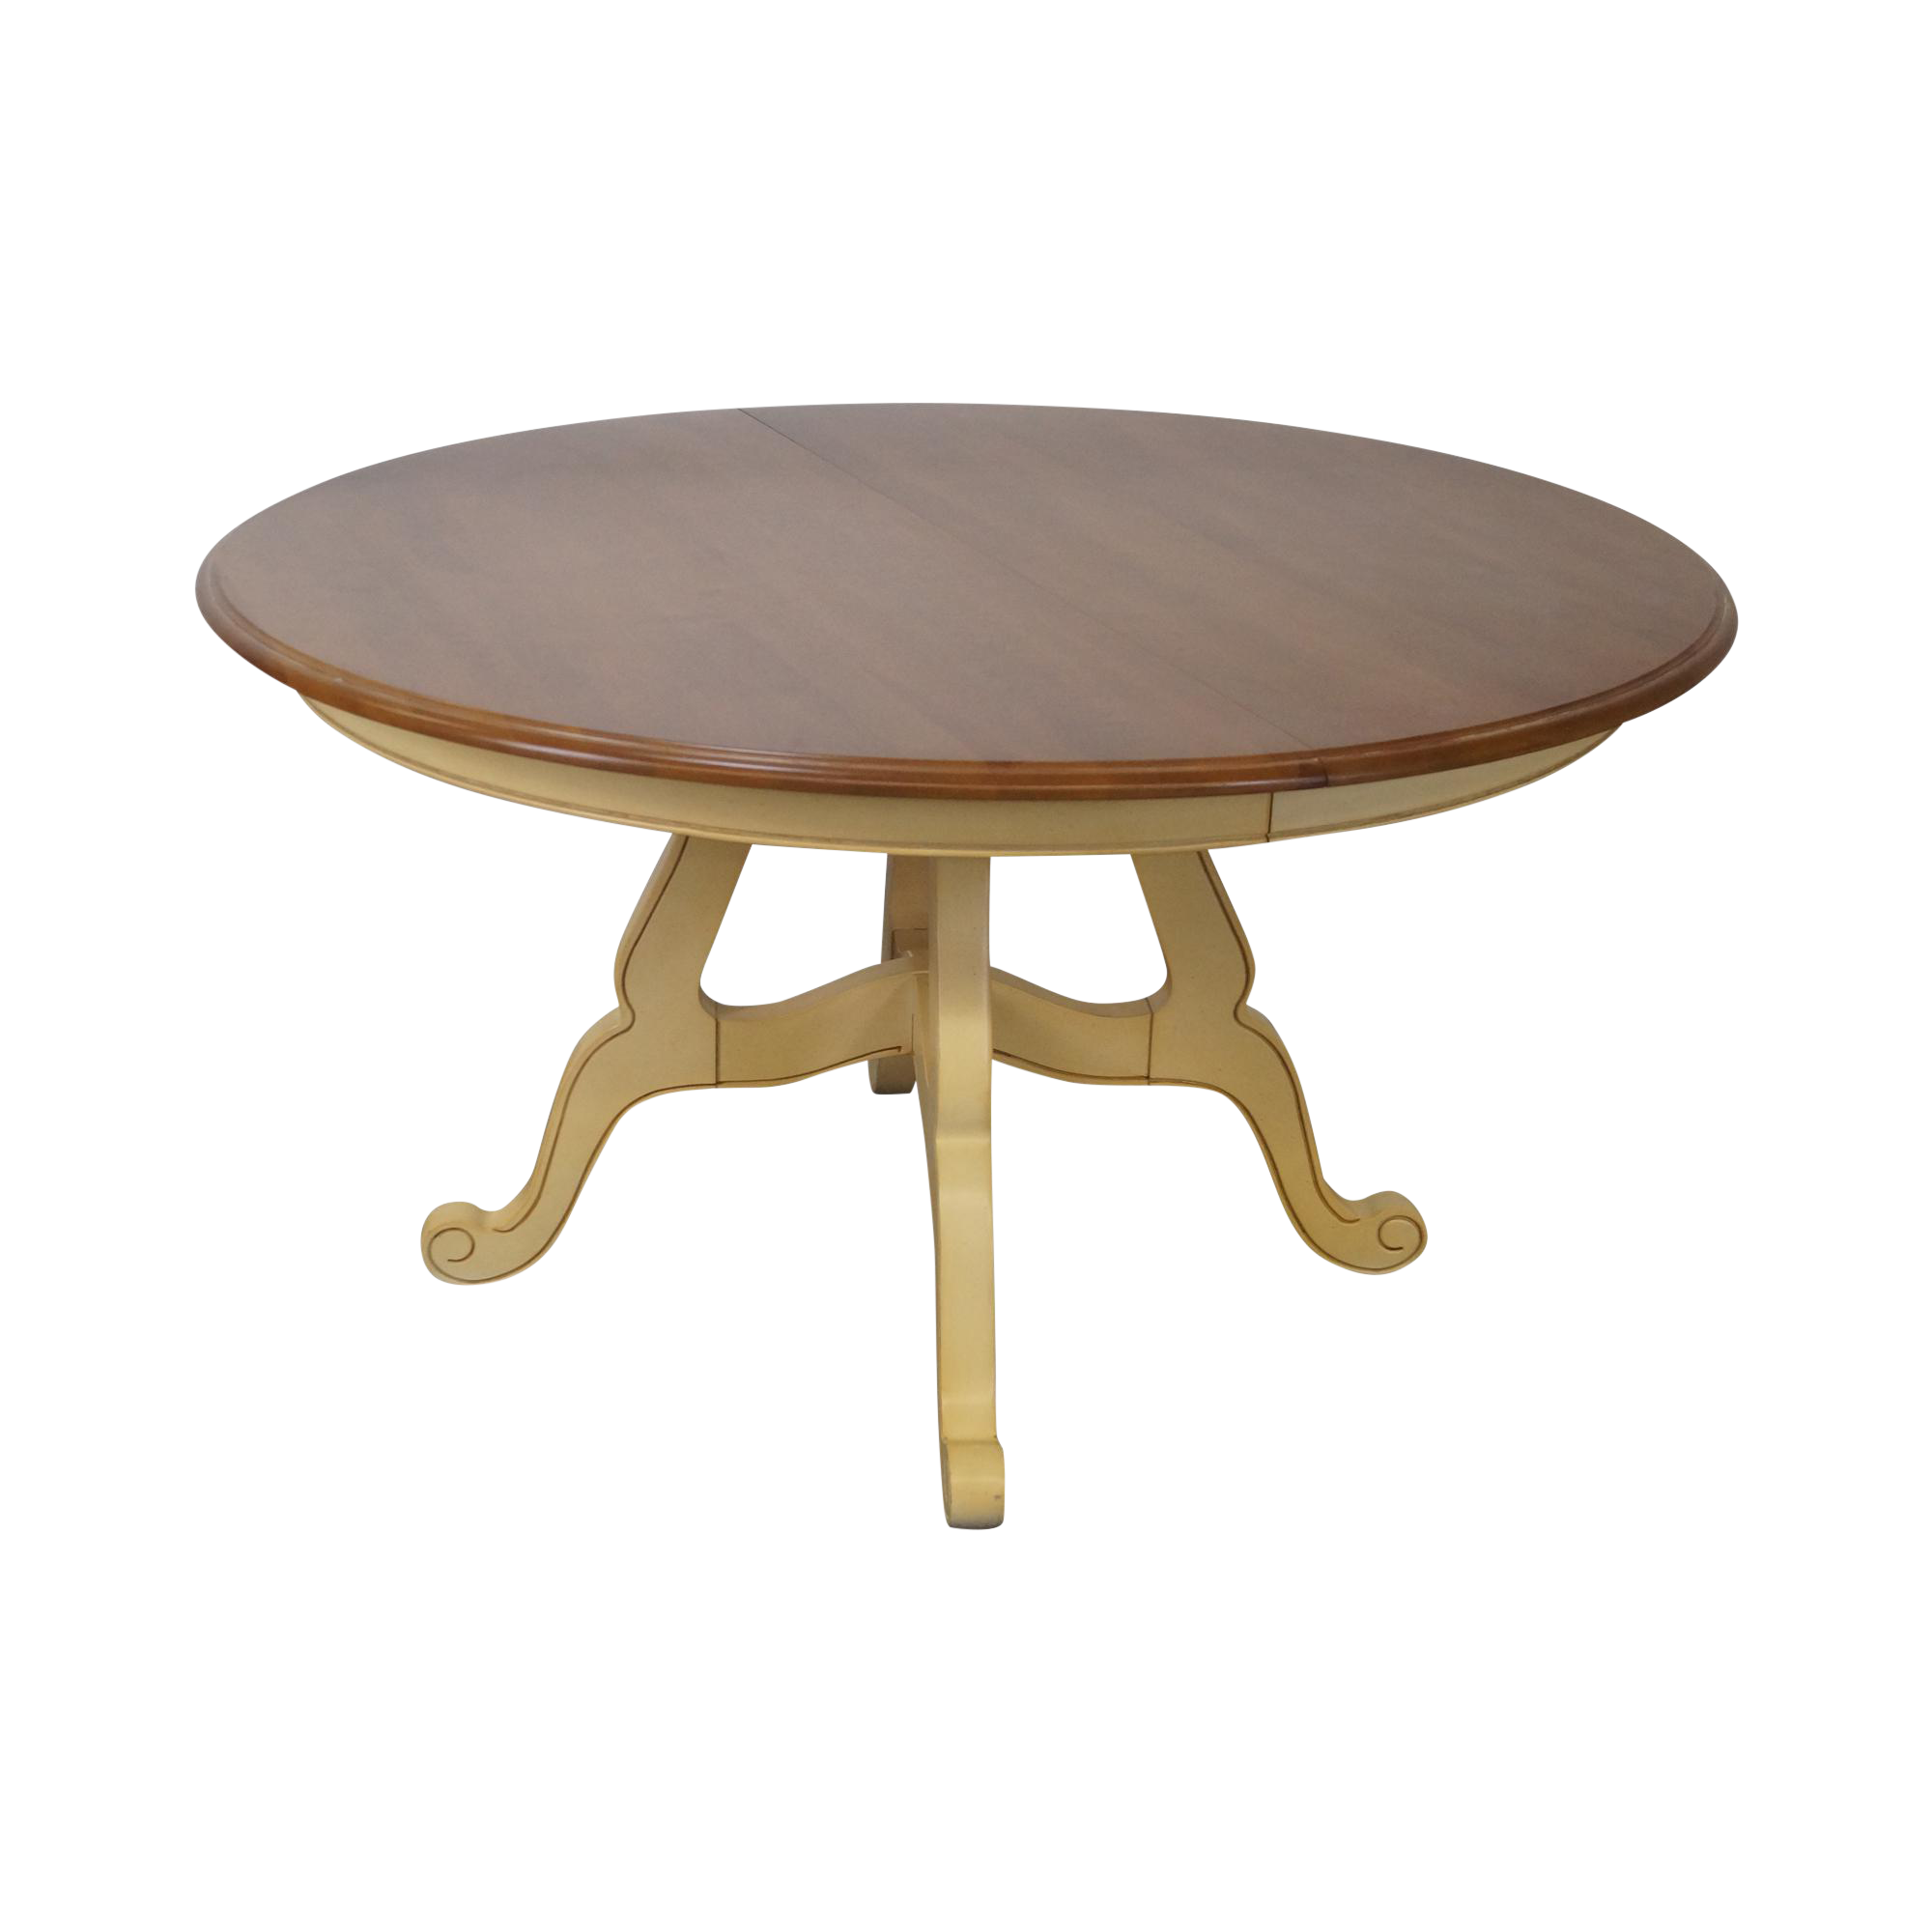 French Country Round Kitchen Table: Ethan Allen Country French Round Dining Table